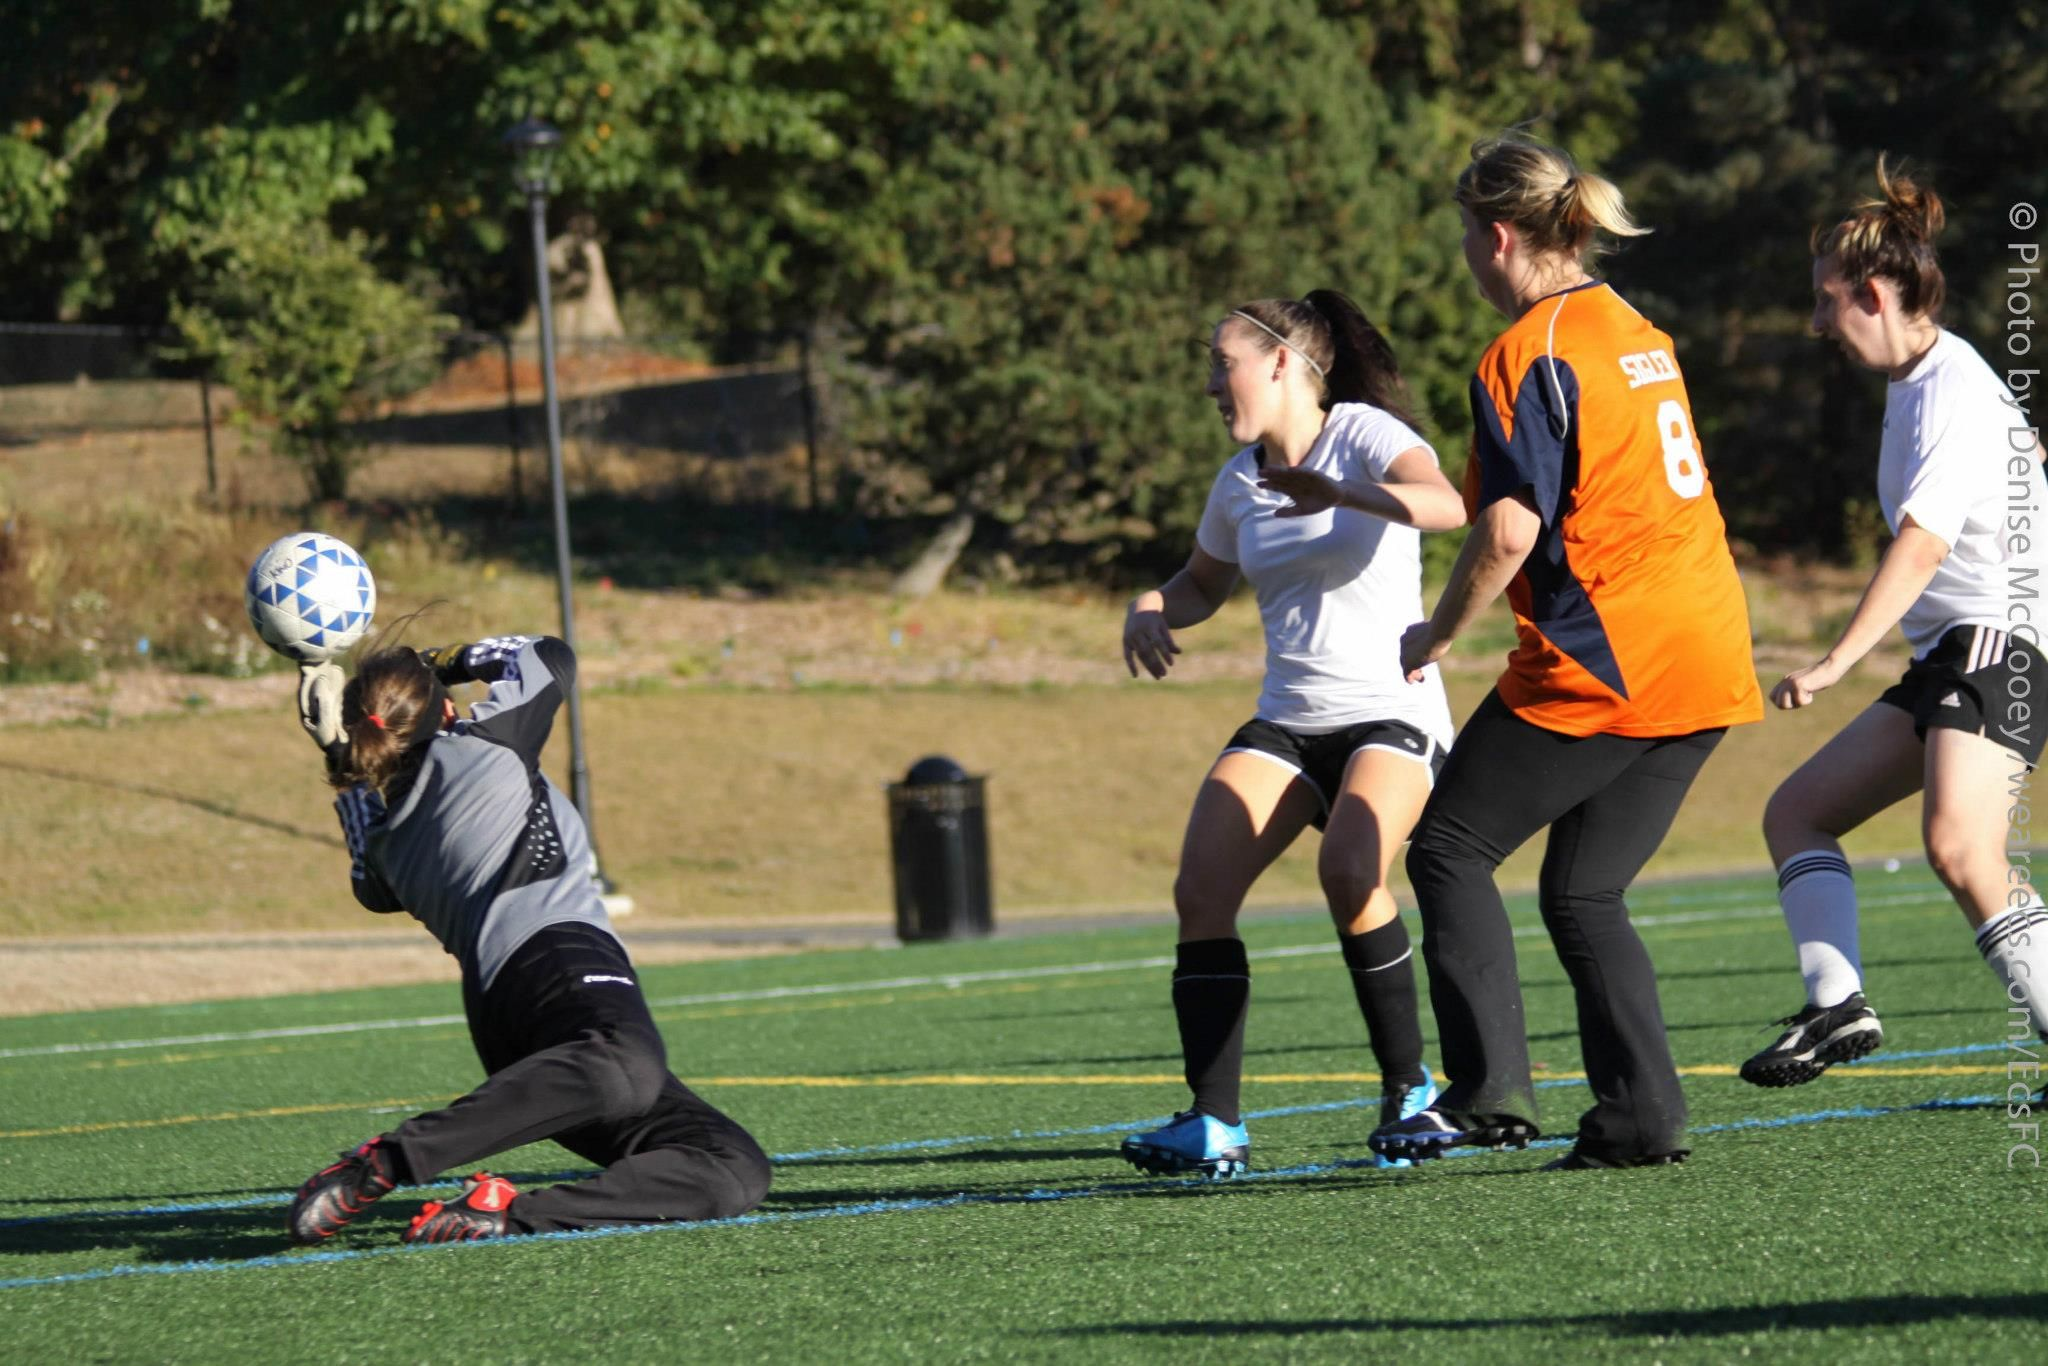 Local Seattle League Rats Encouraging Women Through Soccer With Images Womens Soccer Women Encouragement Soccer